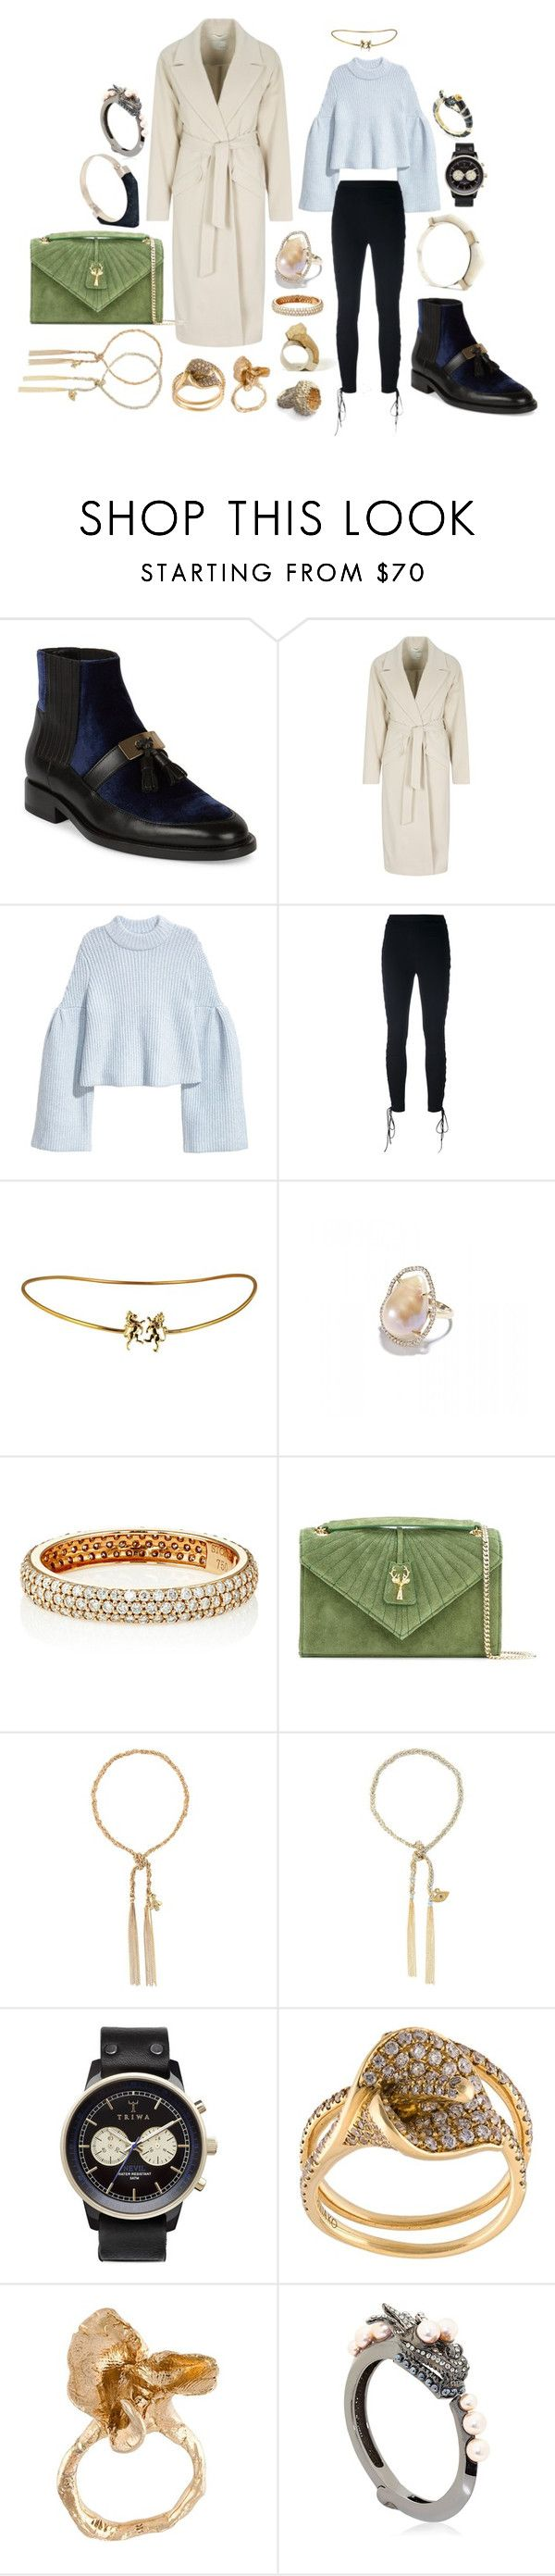 """""""Some people never go crazy, What truly horrible lives they must lead."""" by mymind-is-a-warrior ❤ liked on Polyvore featuring Balmain, Oui, Unravel, Jordan Alexander, STONE, Savas, Carolina Bucci, Triwa, Anita Ko and ALICE WAESE"""